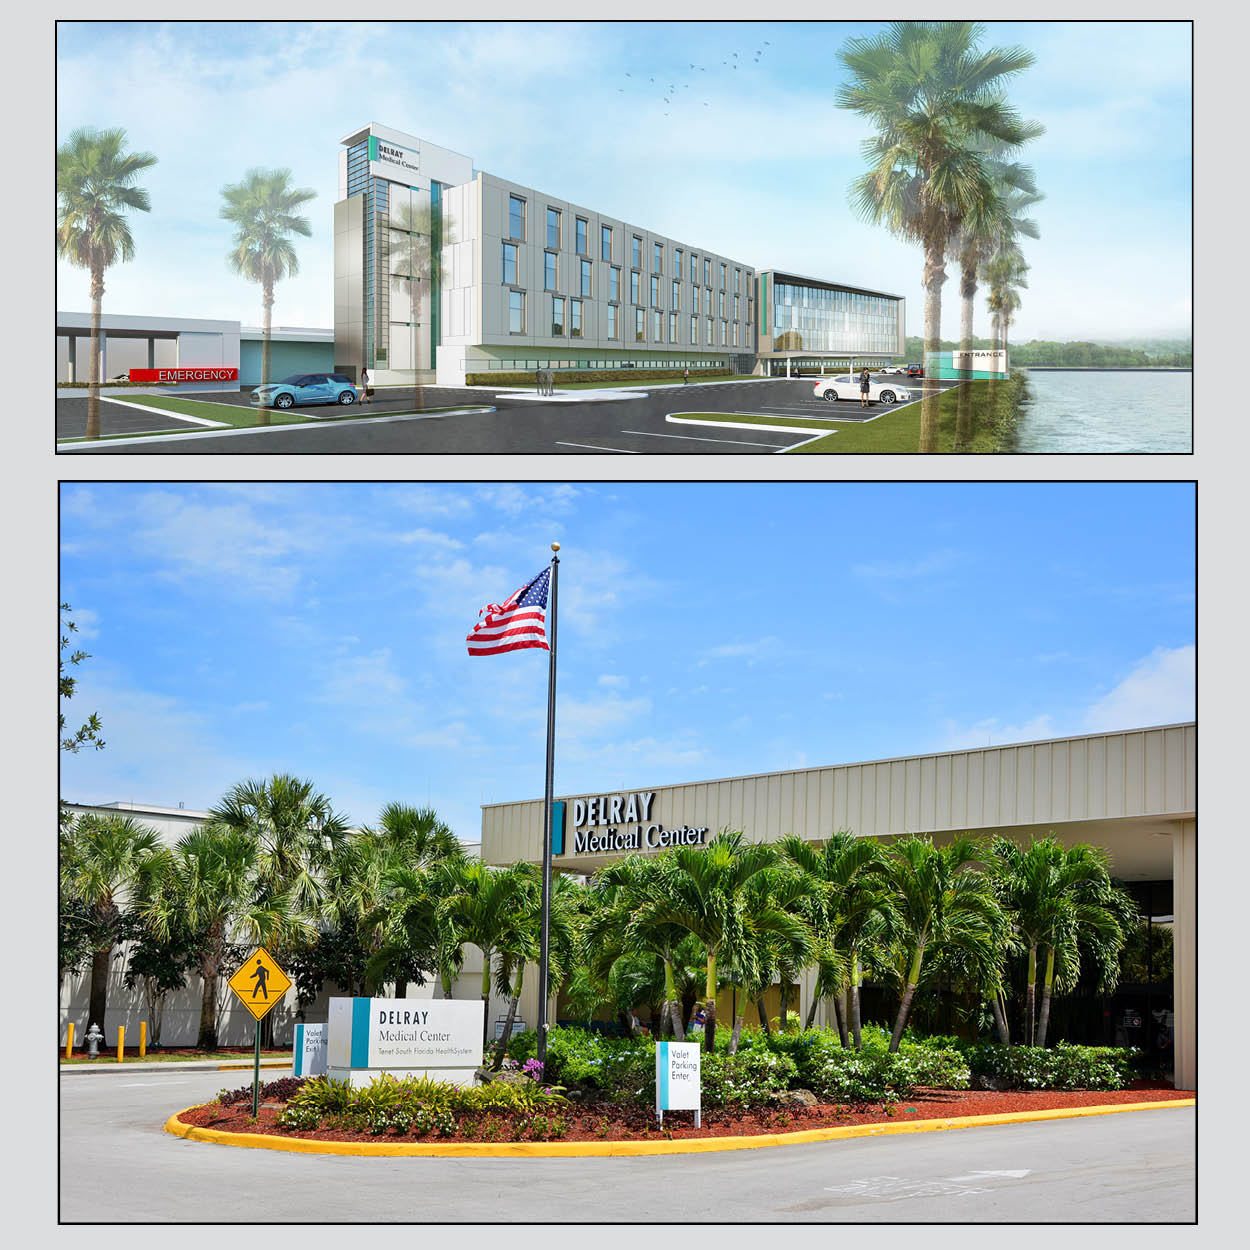 delray-medical-center-collage